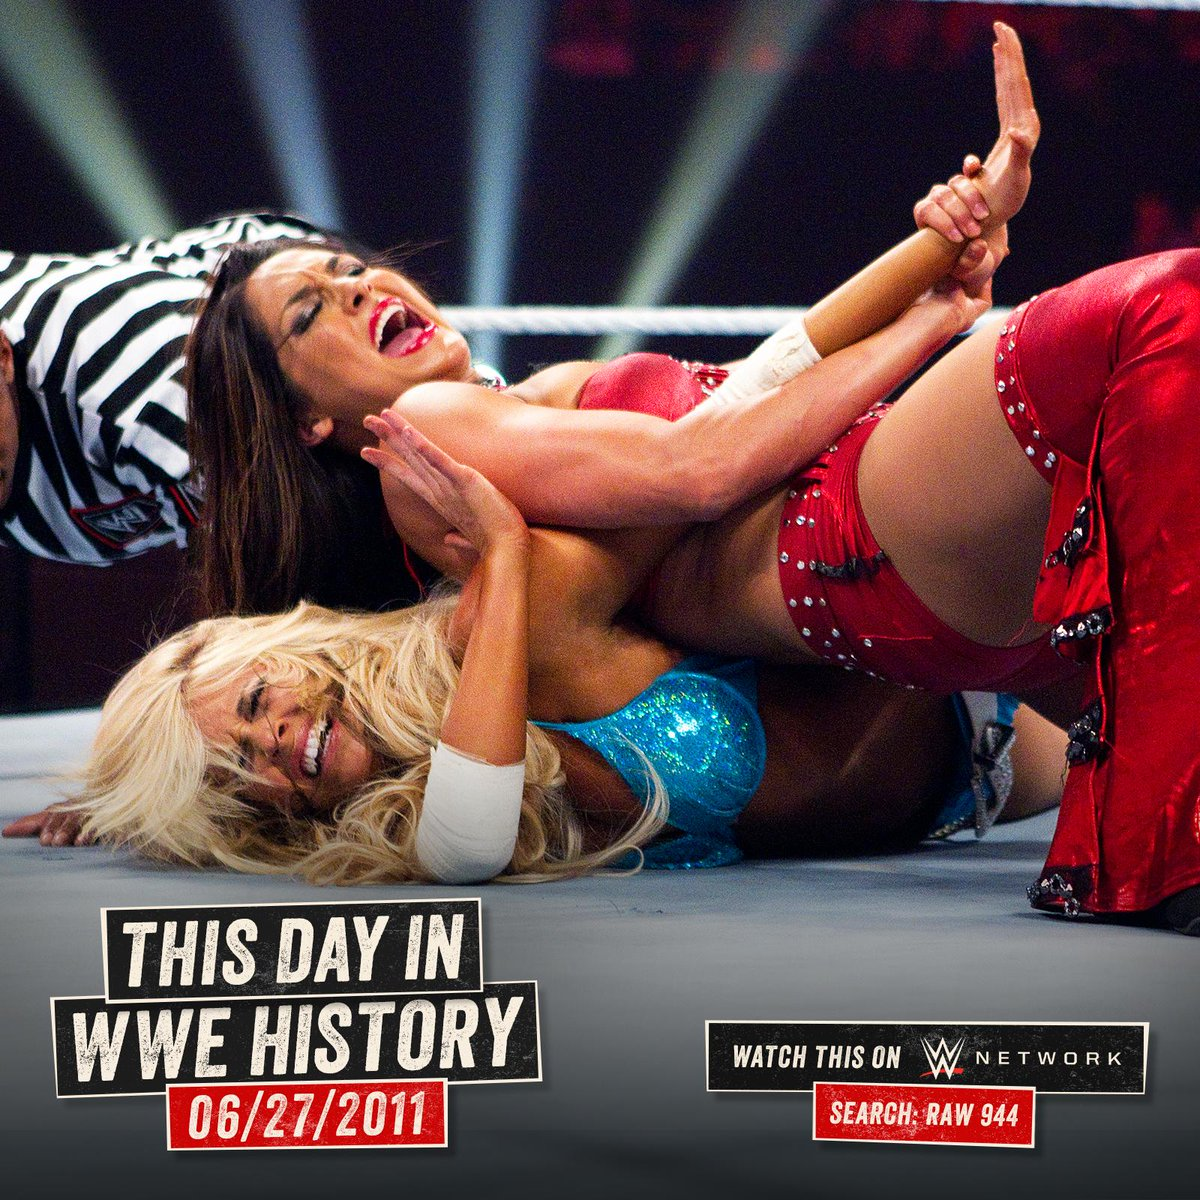 RT @WWENetwork: Nikki @BellaTwins took on @TheBarbieBlank in a #SubmissionMatch on this day in 2011! #RAW https://t.co/5w9zhJ2Ijk